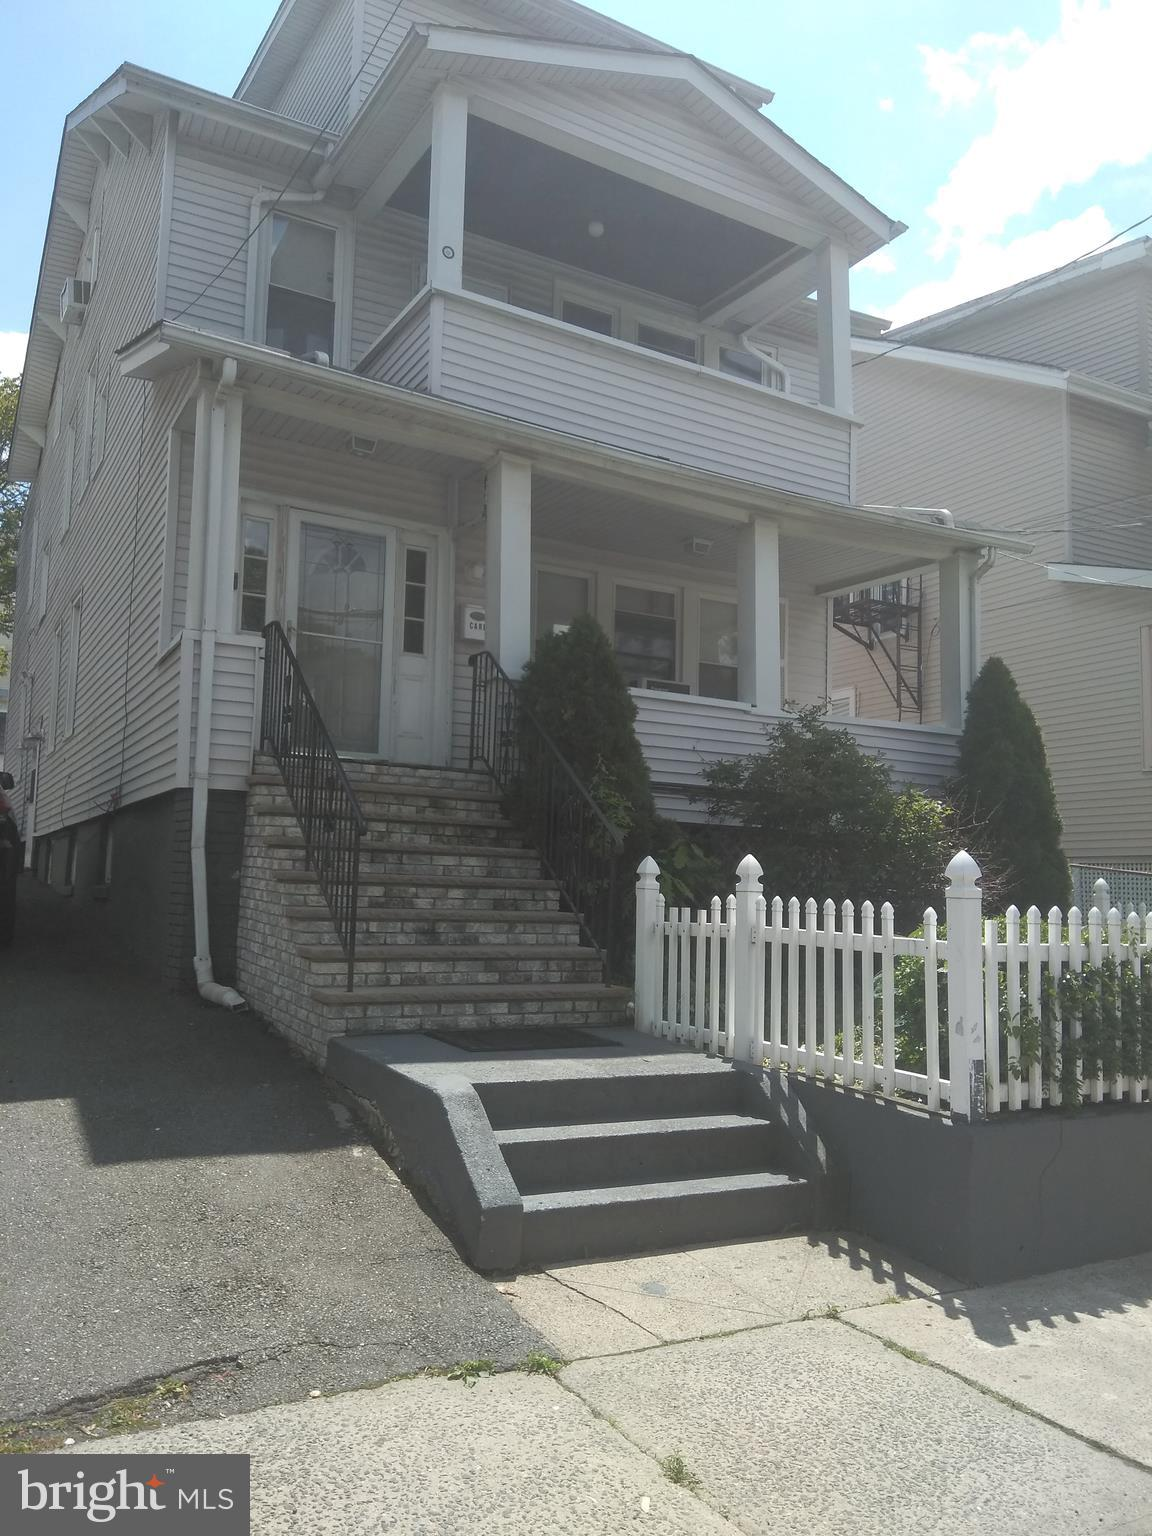 58 CEDAR AVENUE, NEWARK, NJ 07106